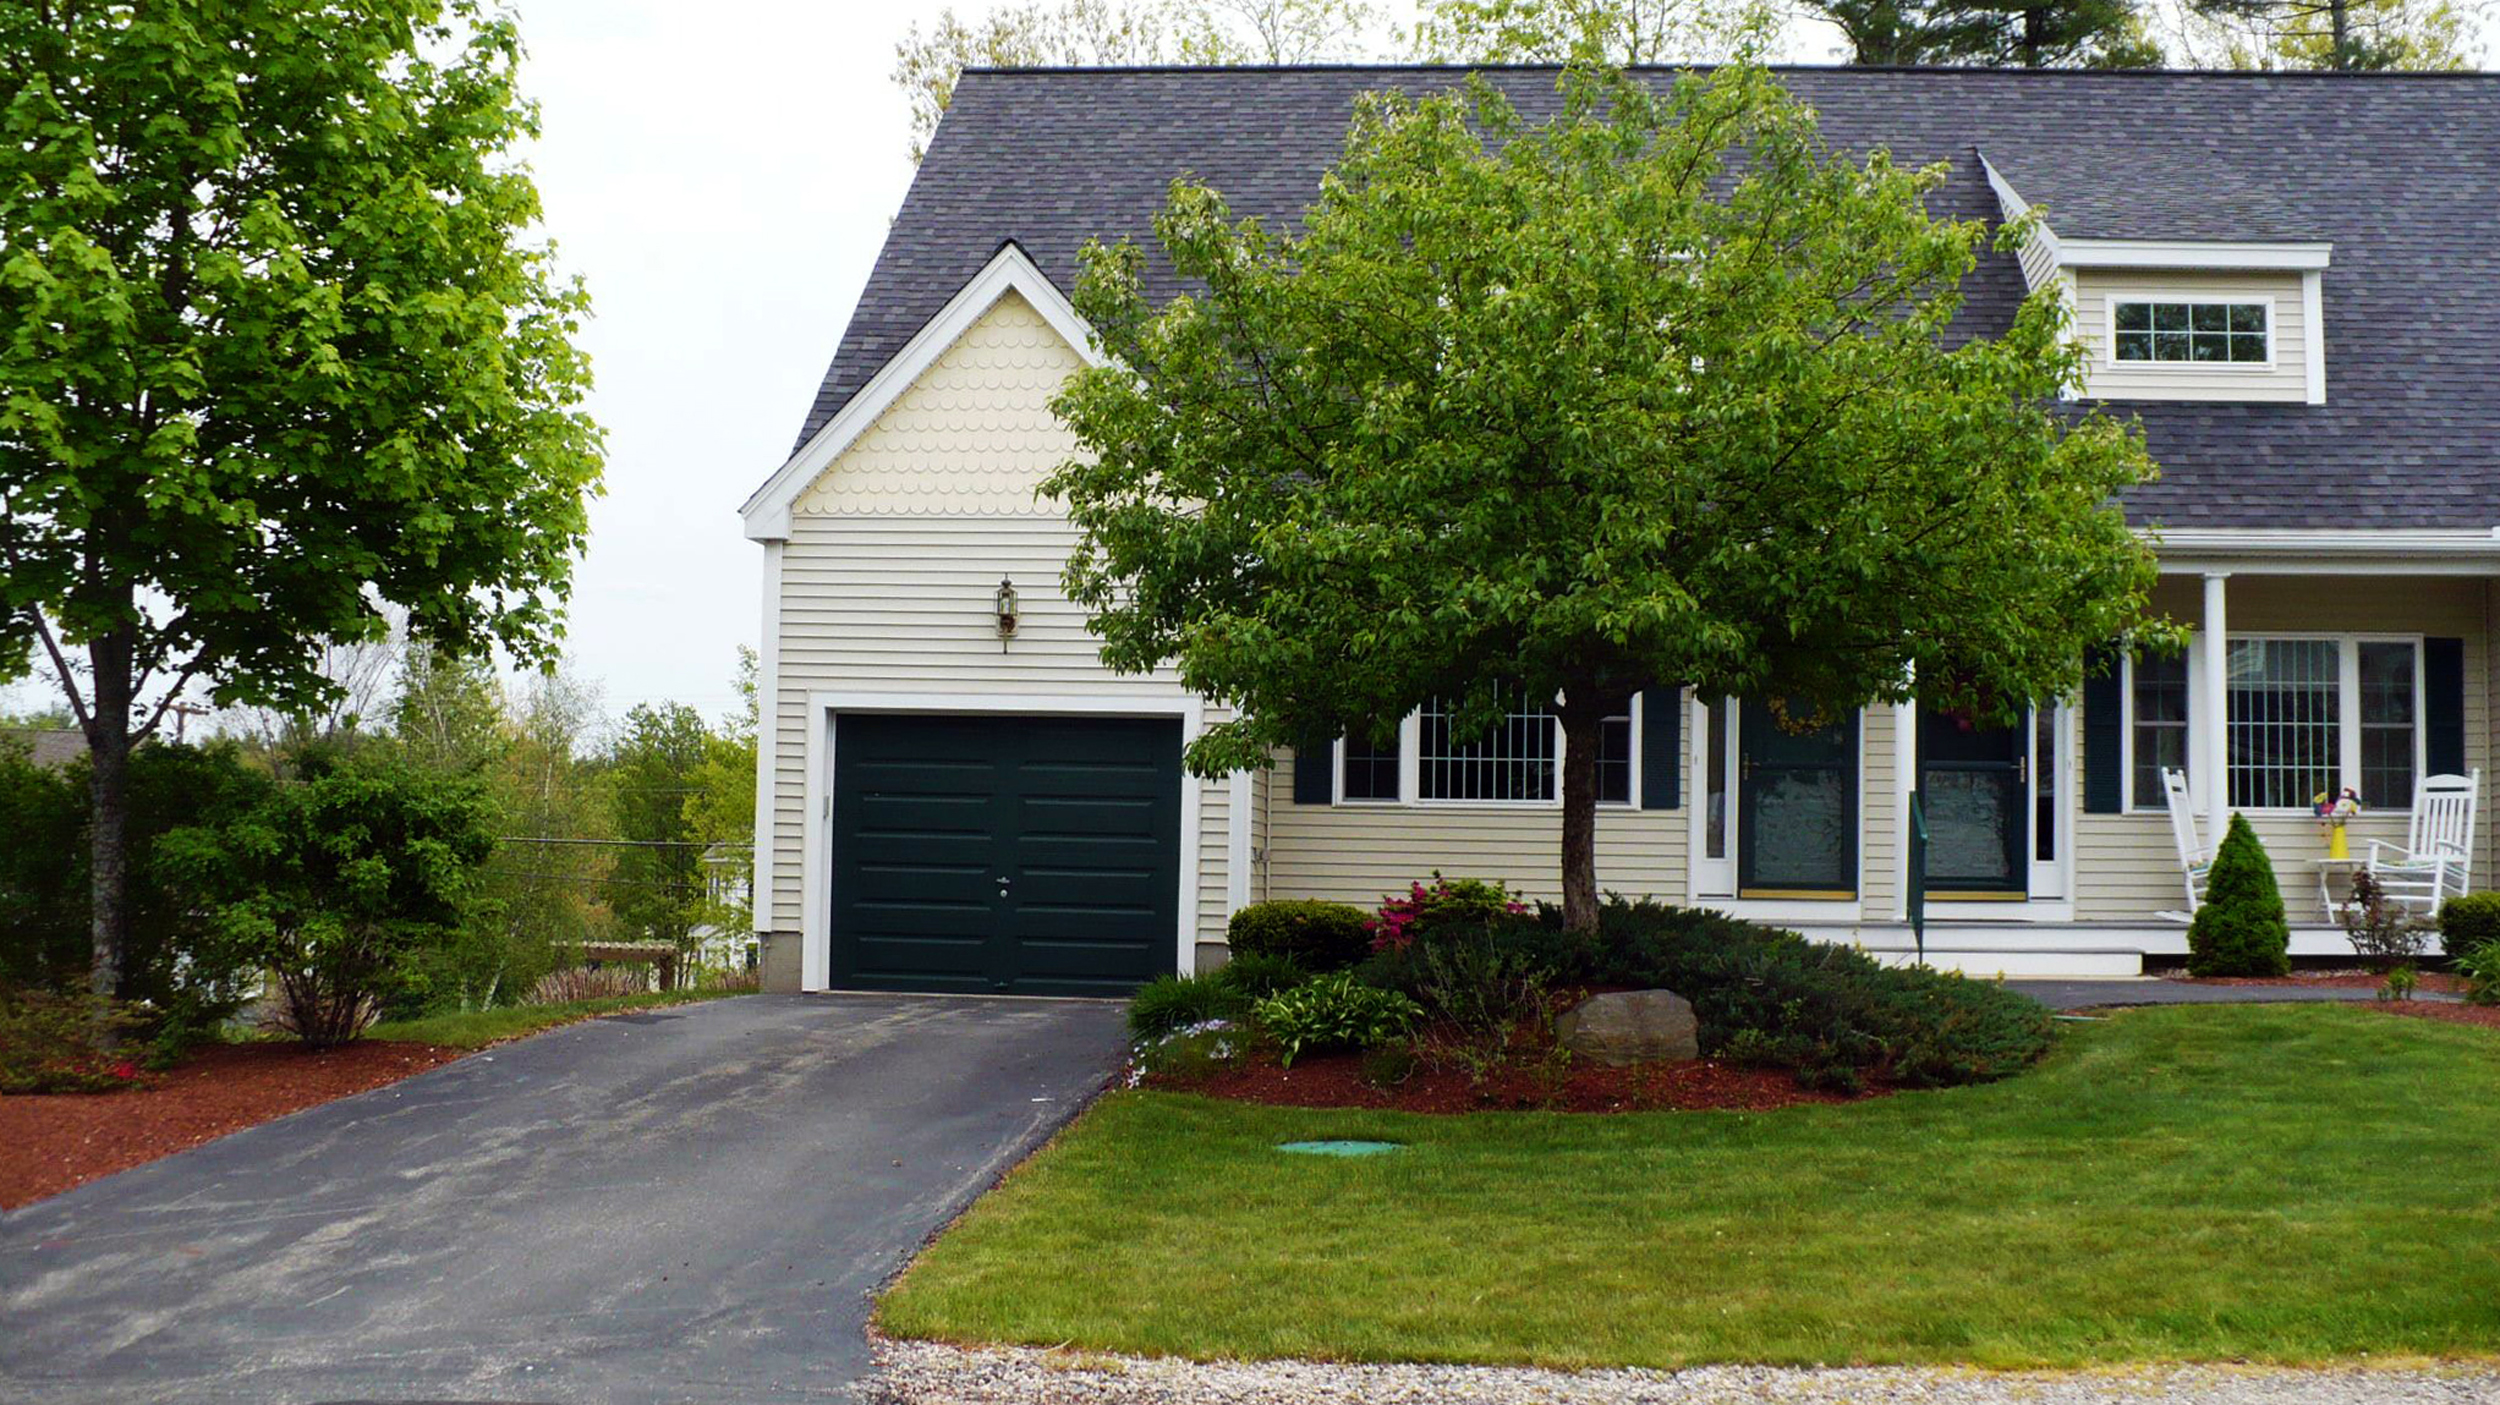 Single Family Home for Sale at 2 Prince Ln, Raymond Raymond, New Hampshire, 03077 United States